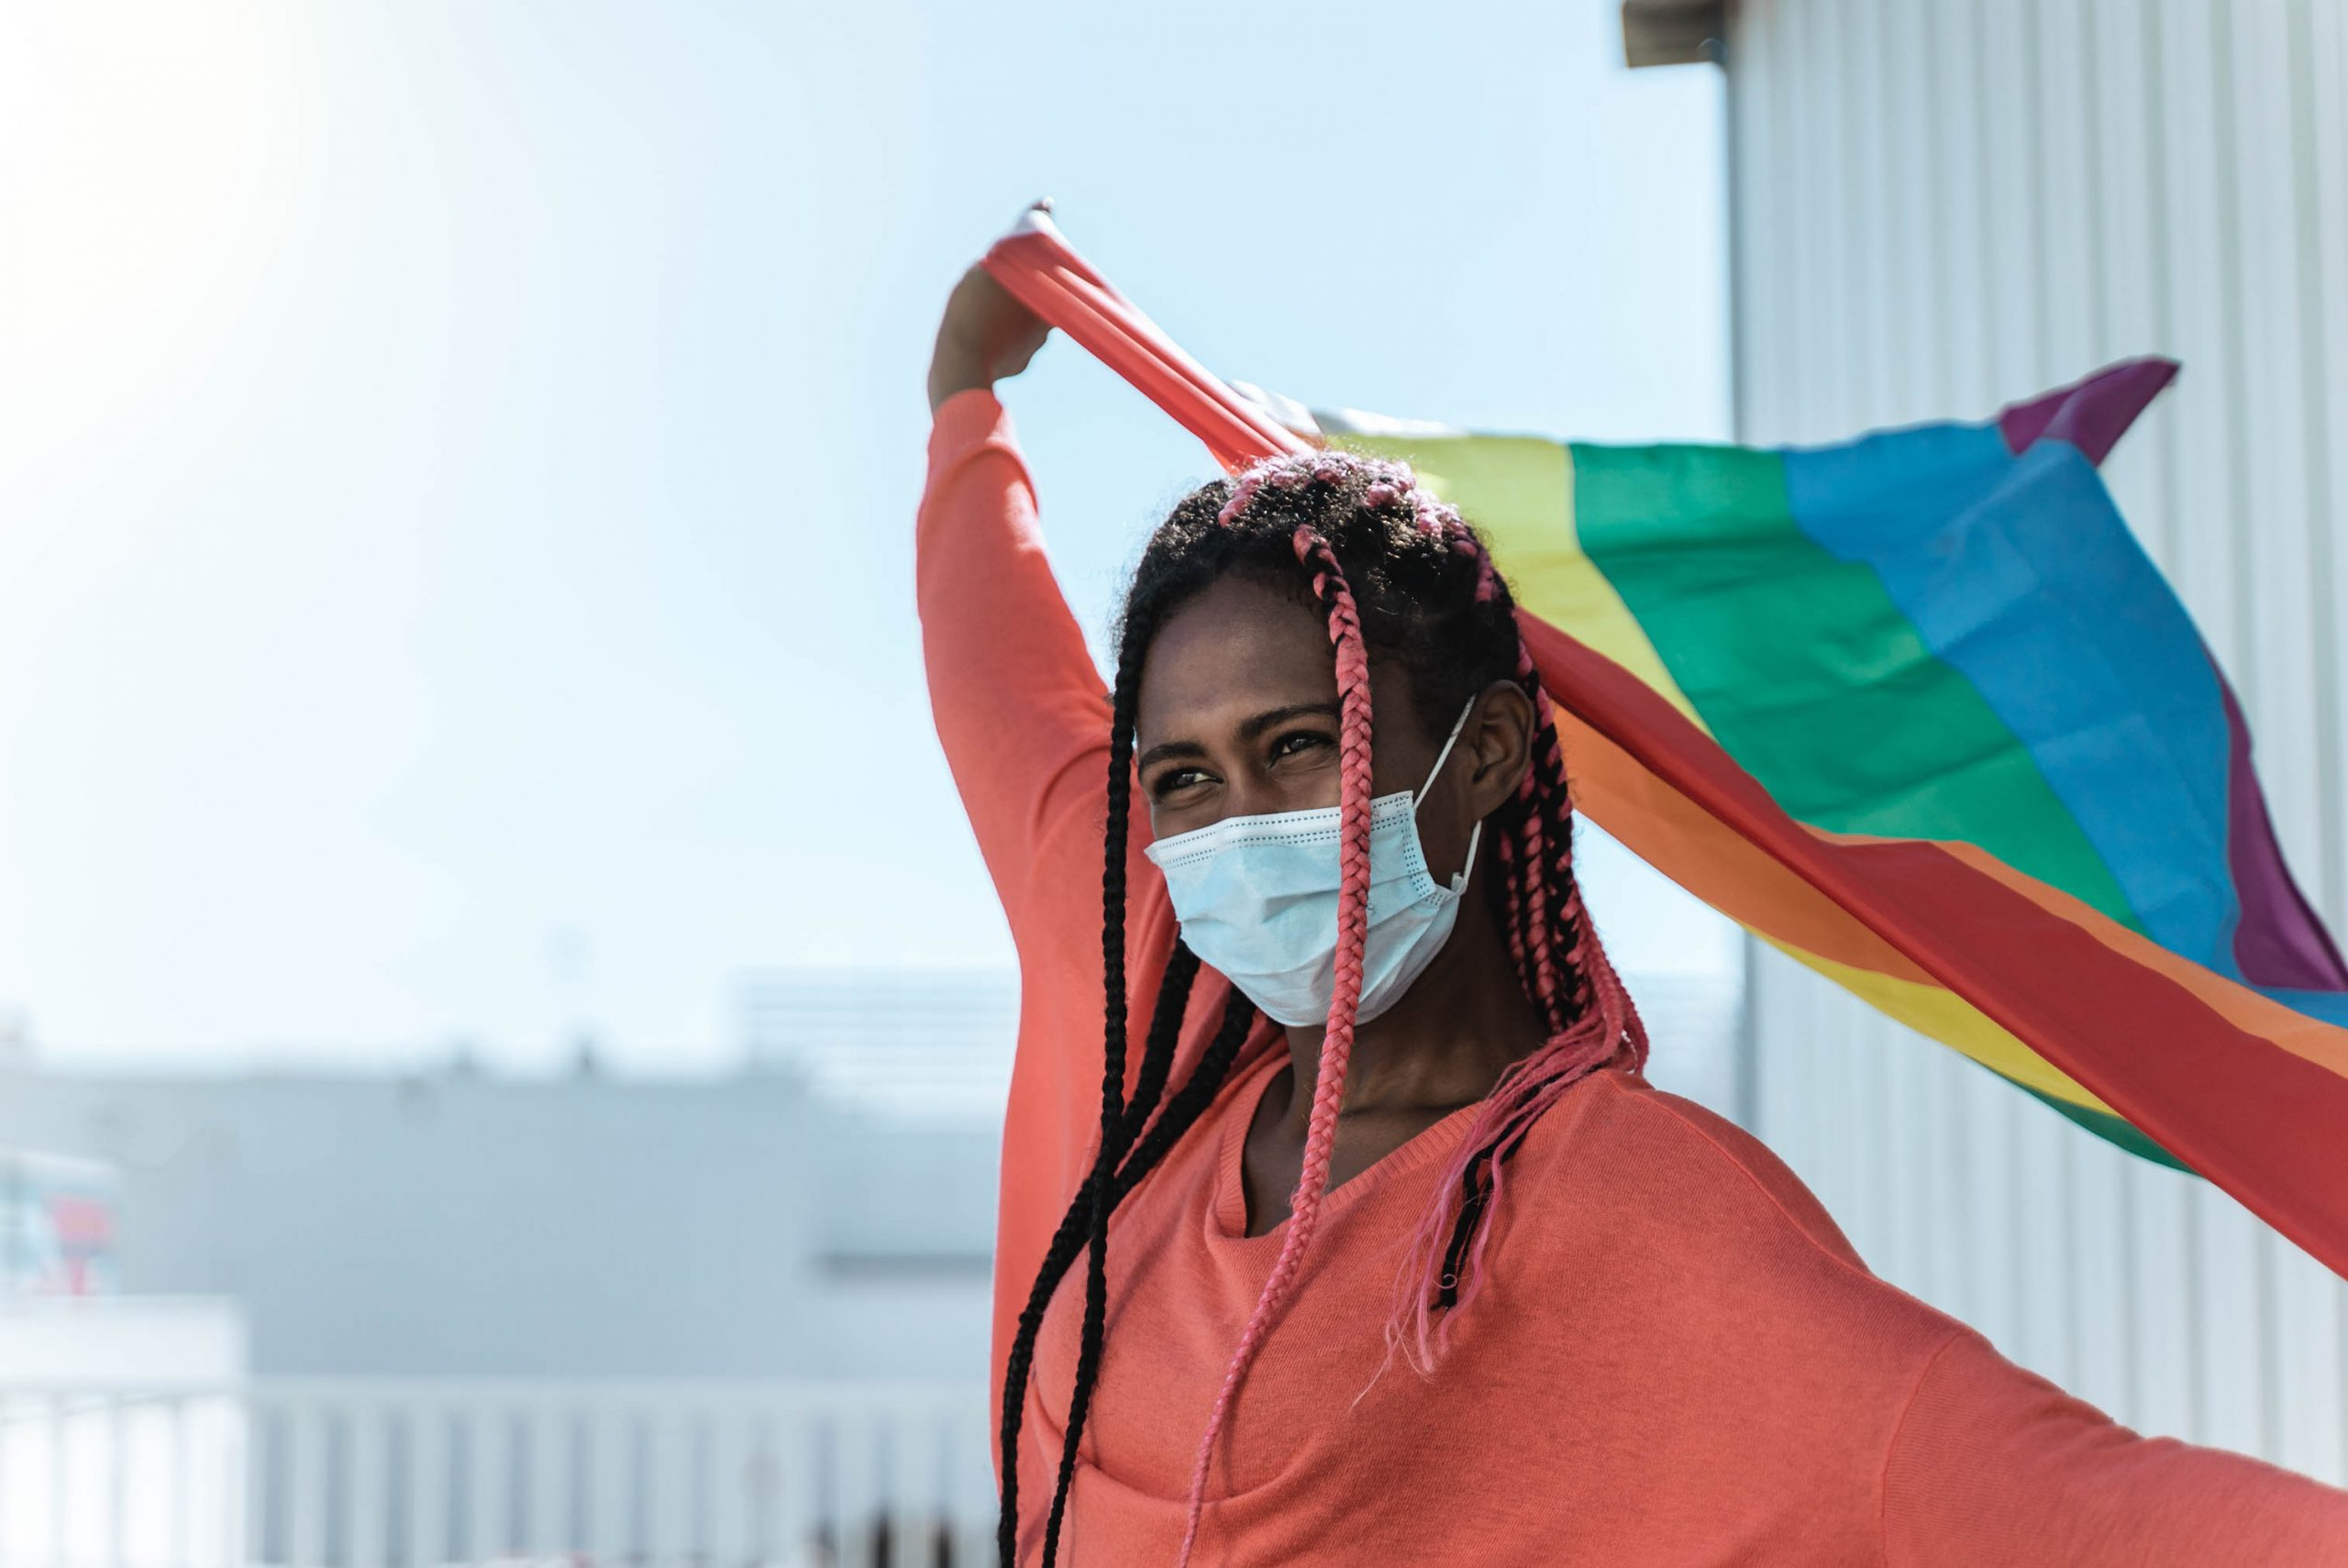 Young african lesbian with safety mask holding lgbt rainbow flag at pride event - Focus on face